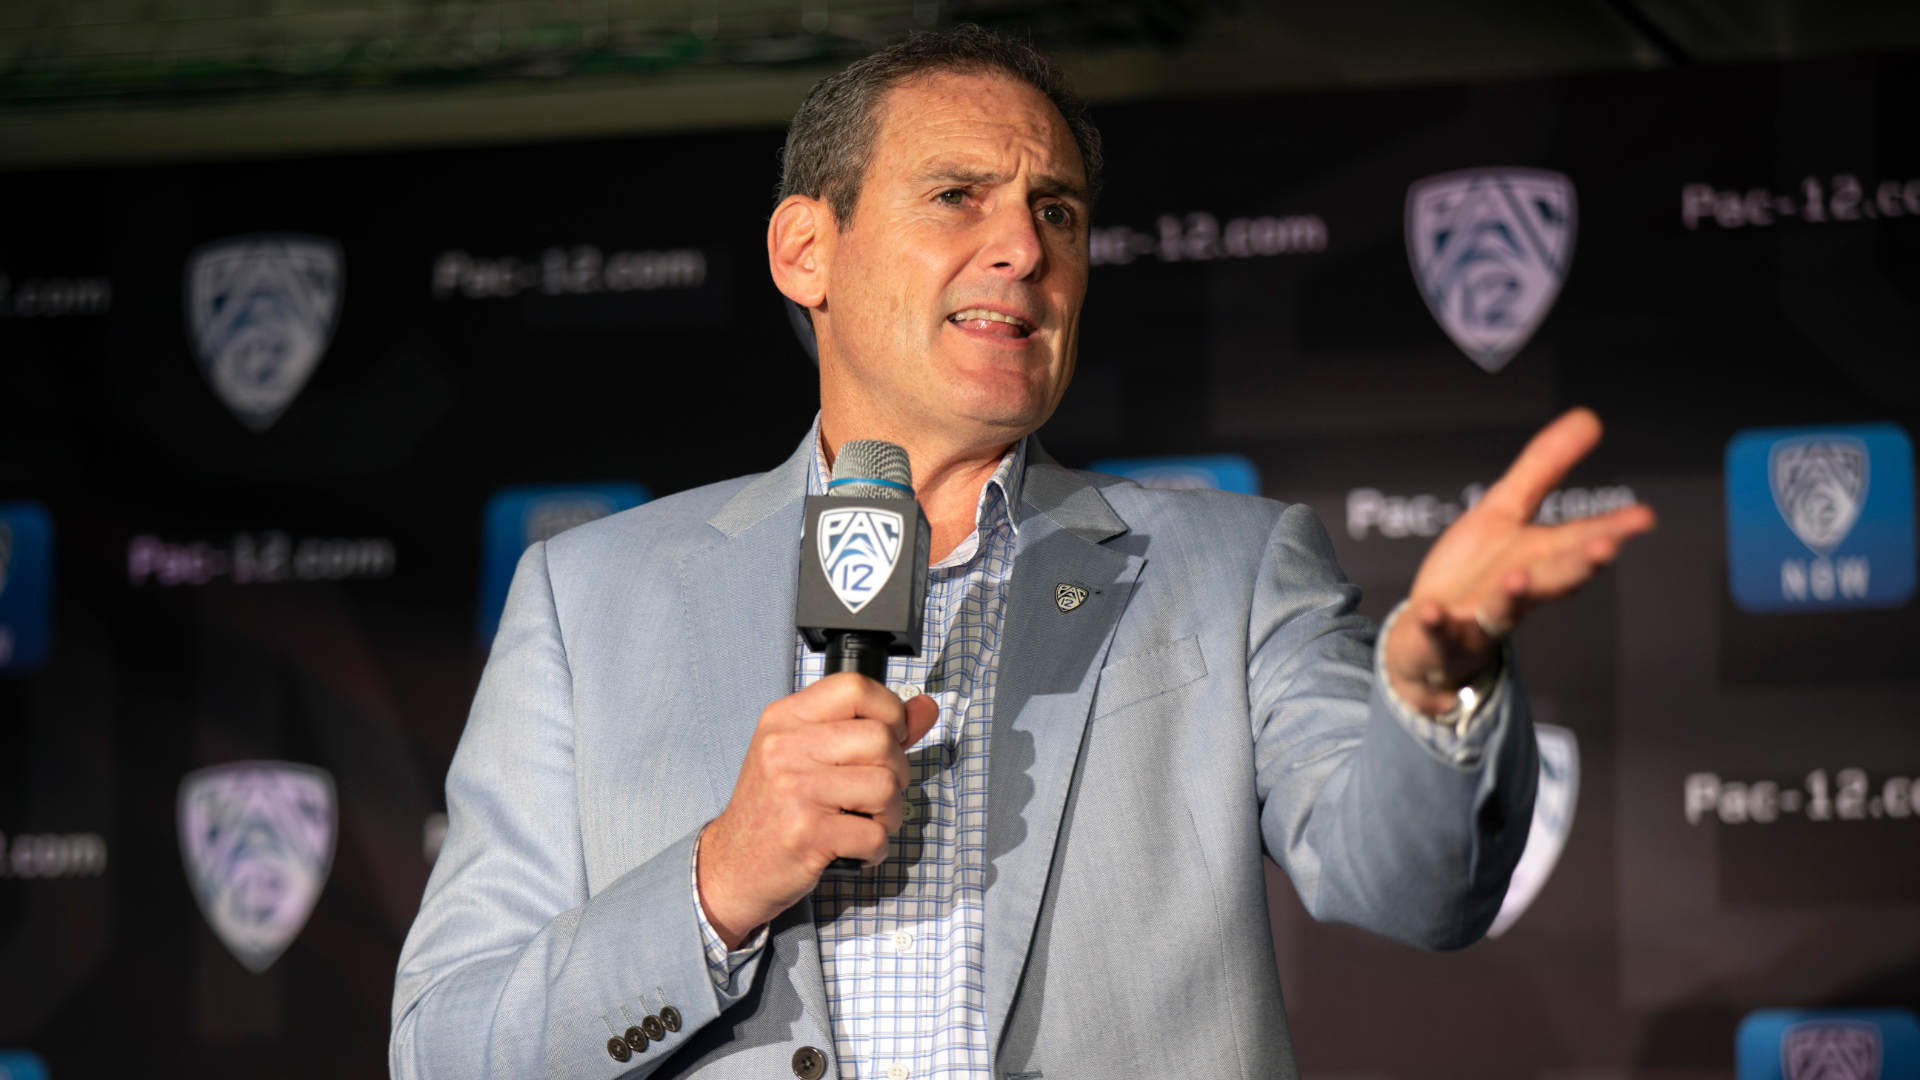 Commissioner Larry Scott speaks during the Pac-12 NCAA college basketball media day in San Francisco on Oct. 8, 2019. (D. Ross Cameron / Associated Press)